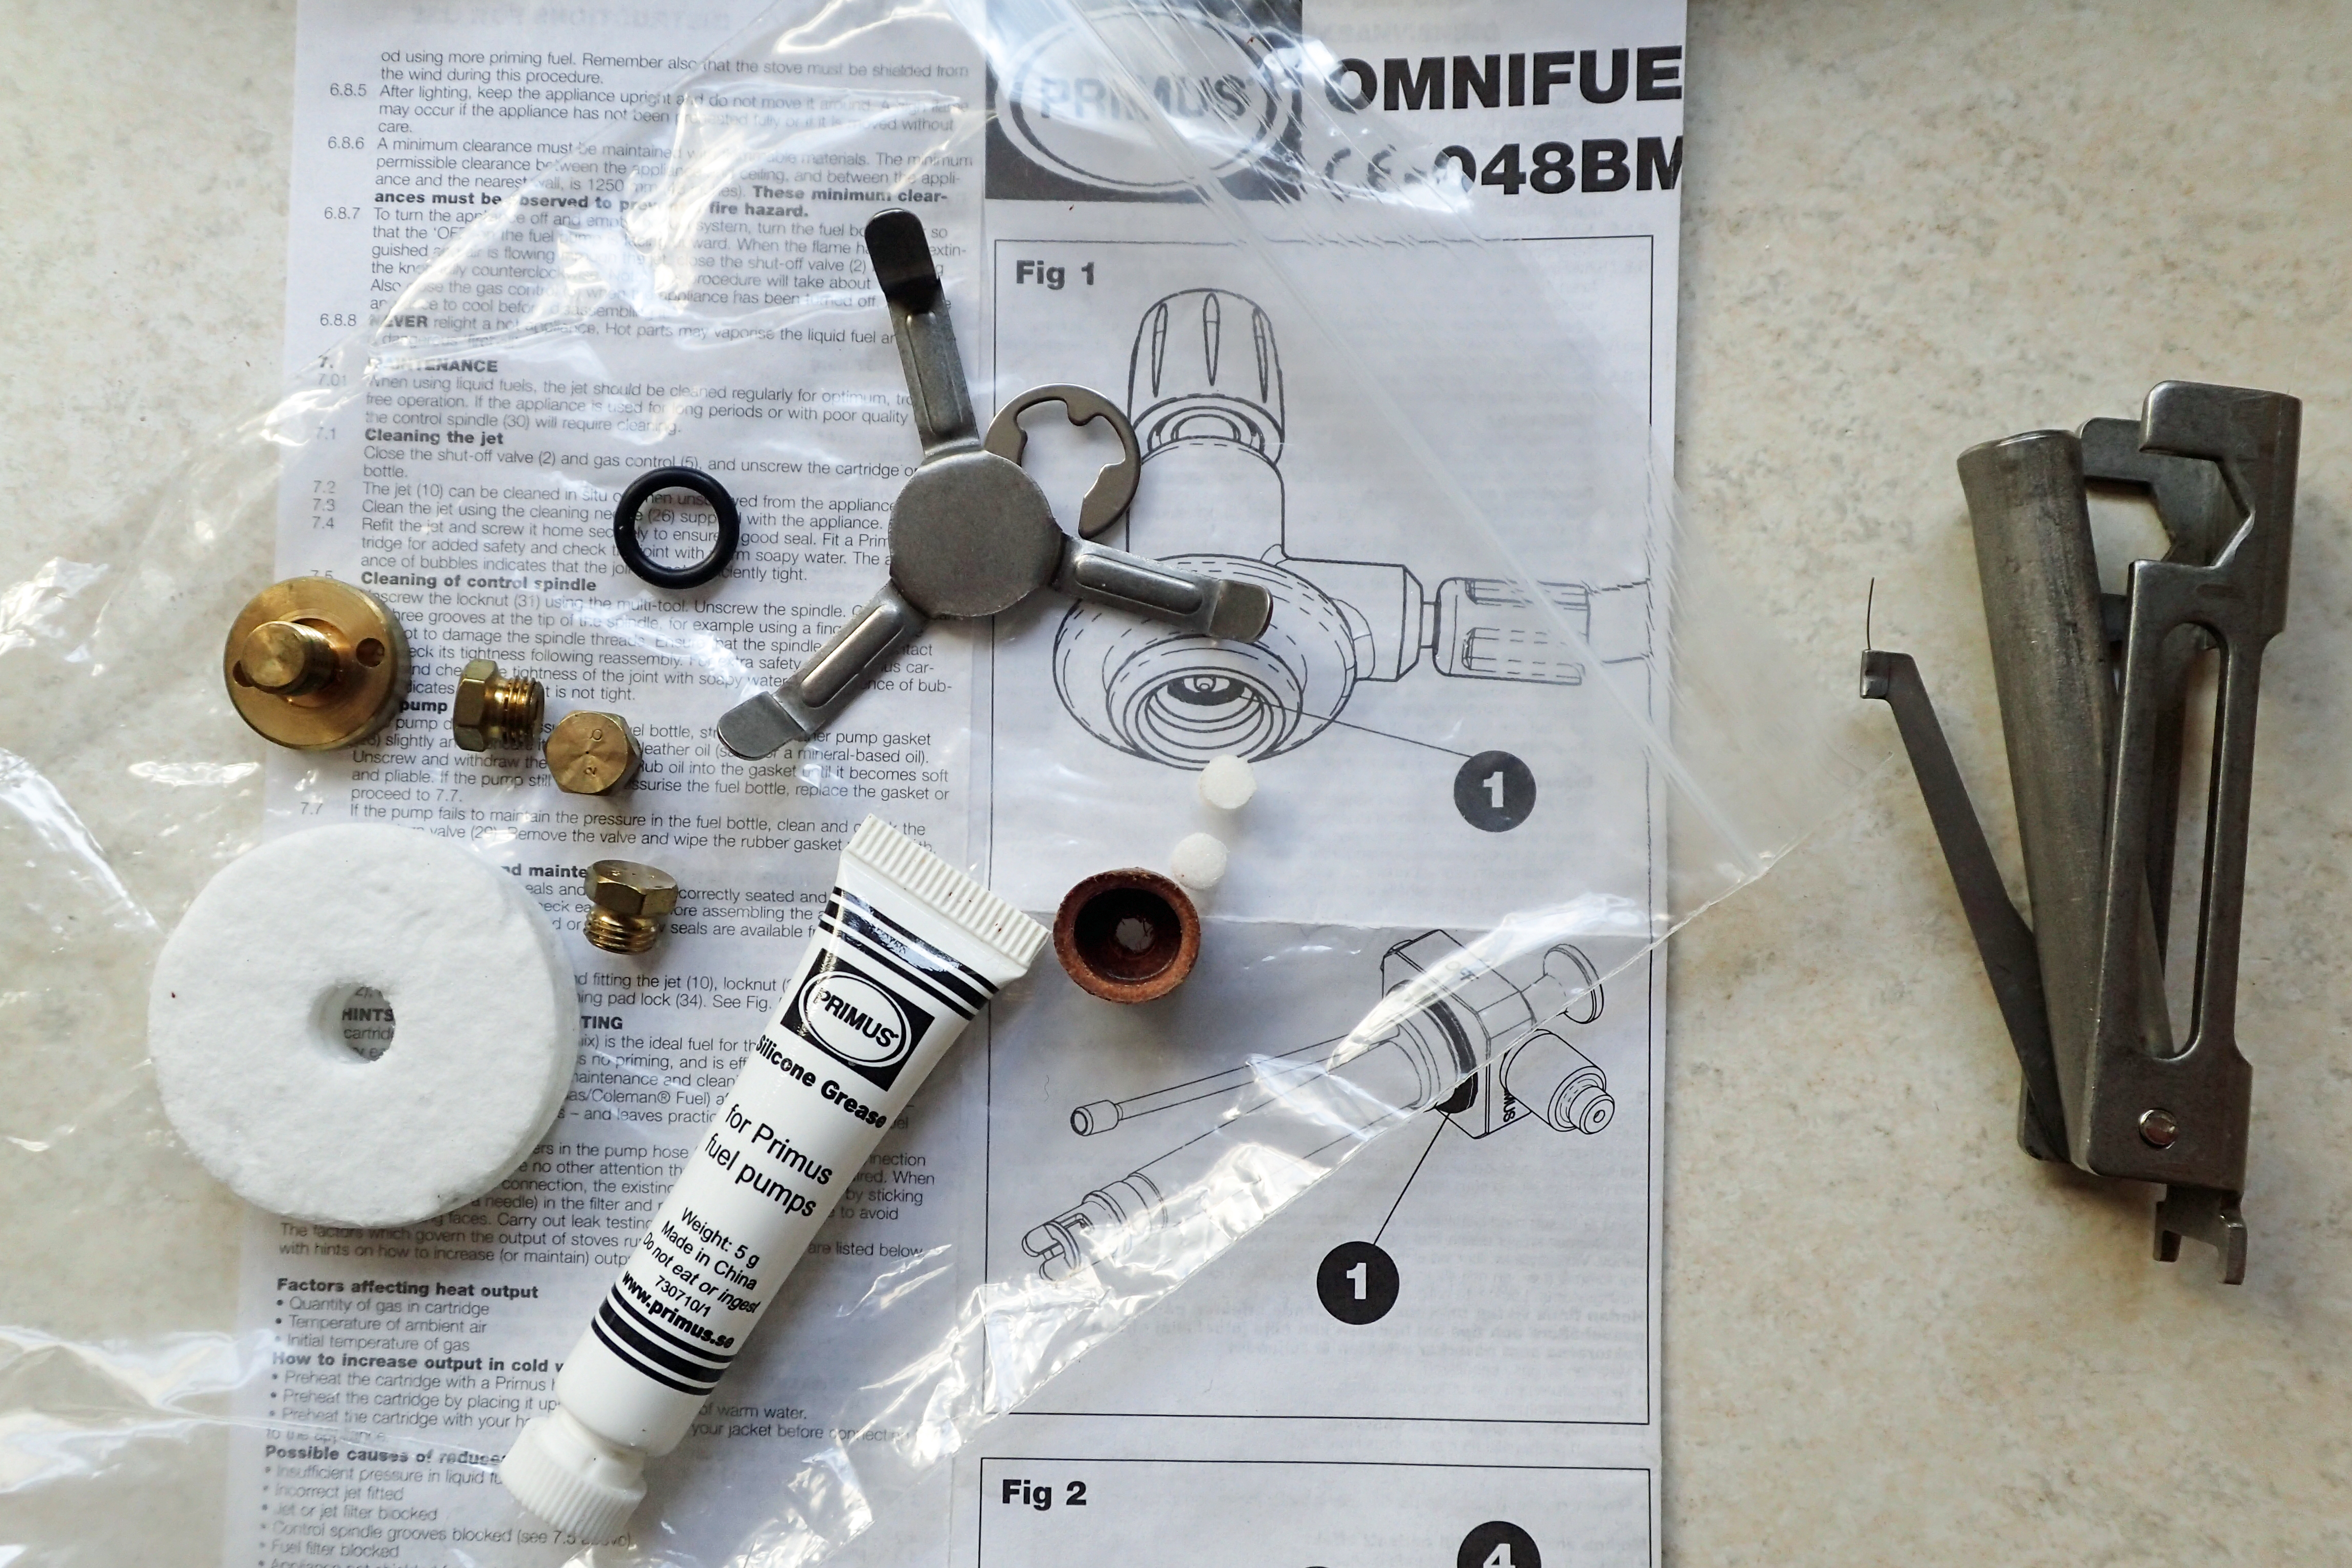 Service kit for Primus Omnifuel 3289 includes a single o-ring